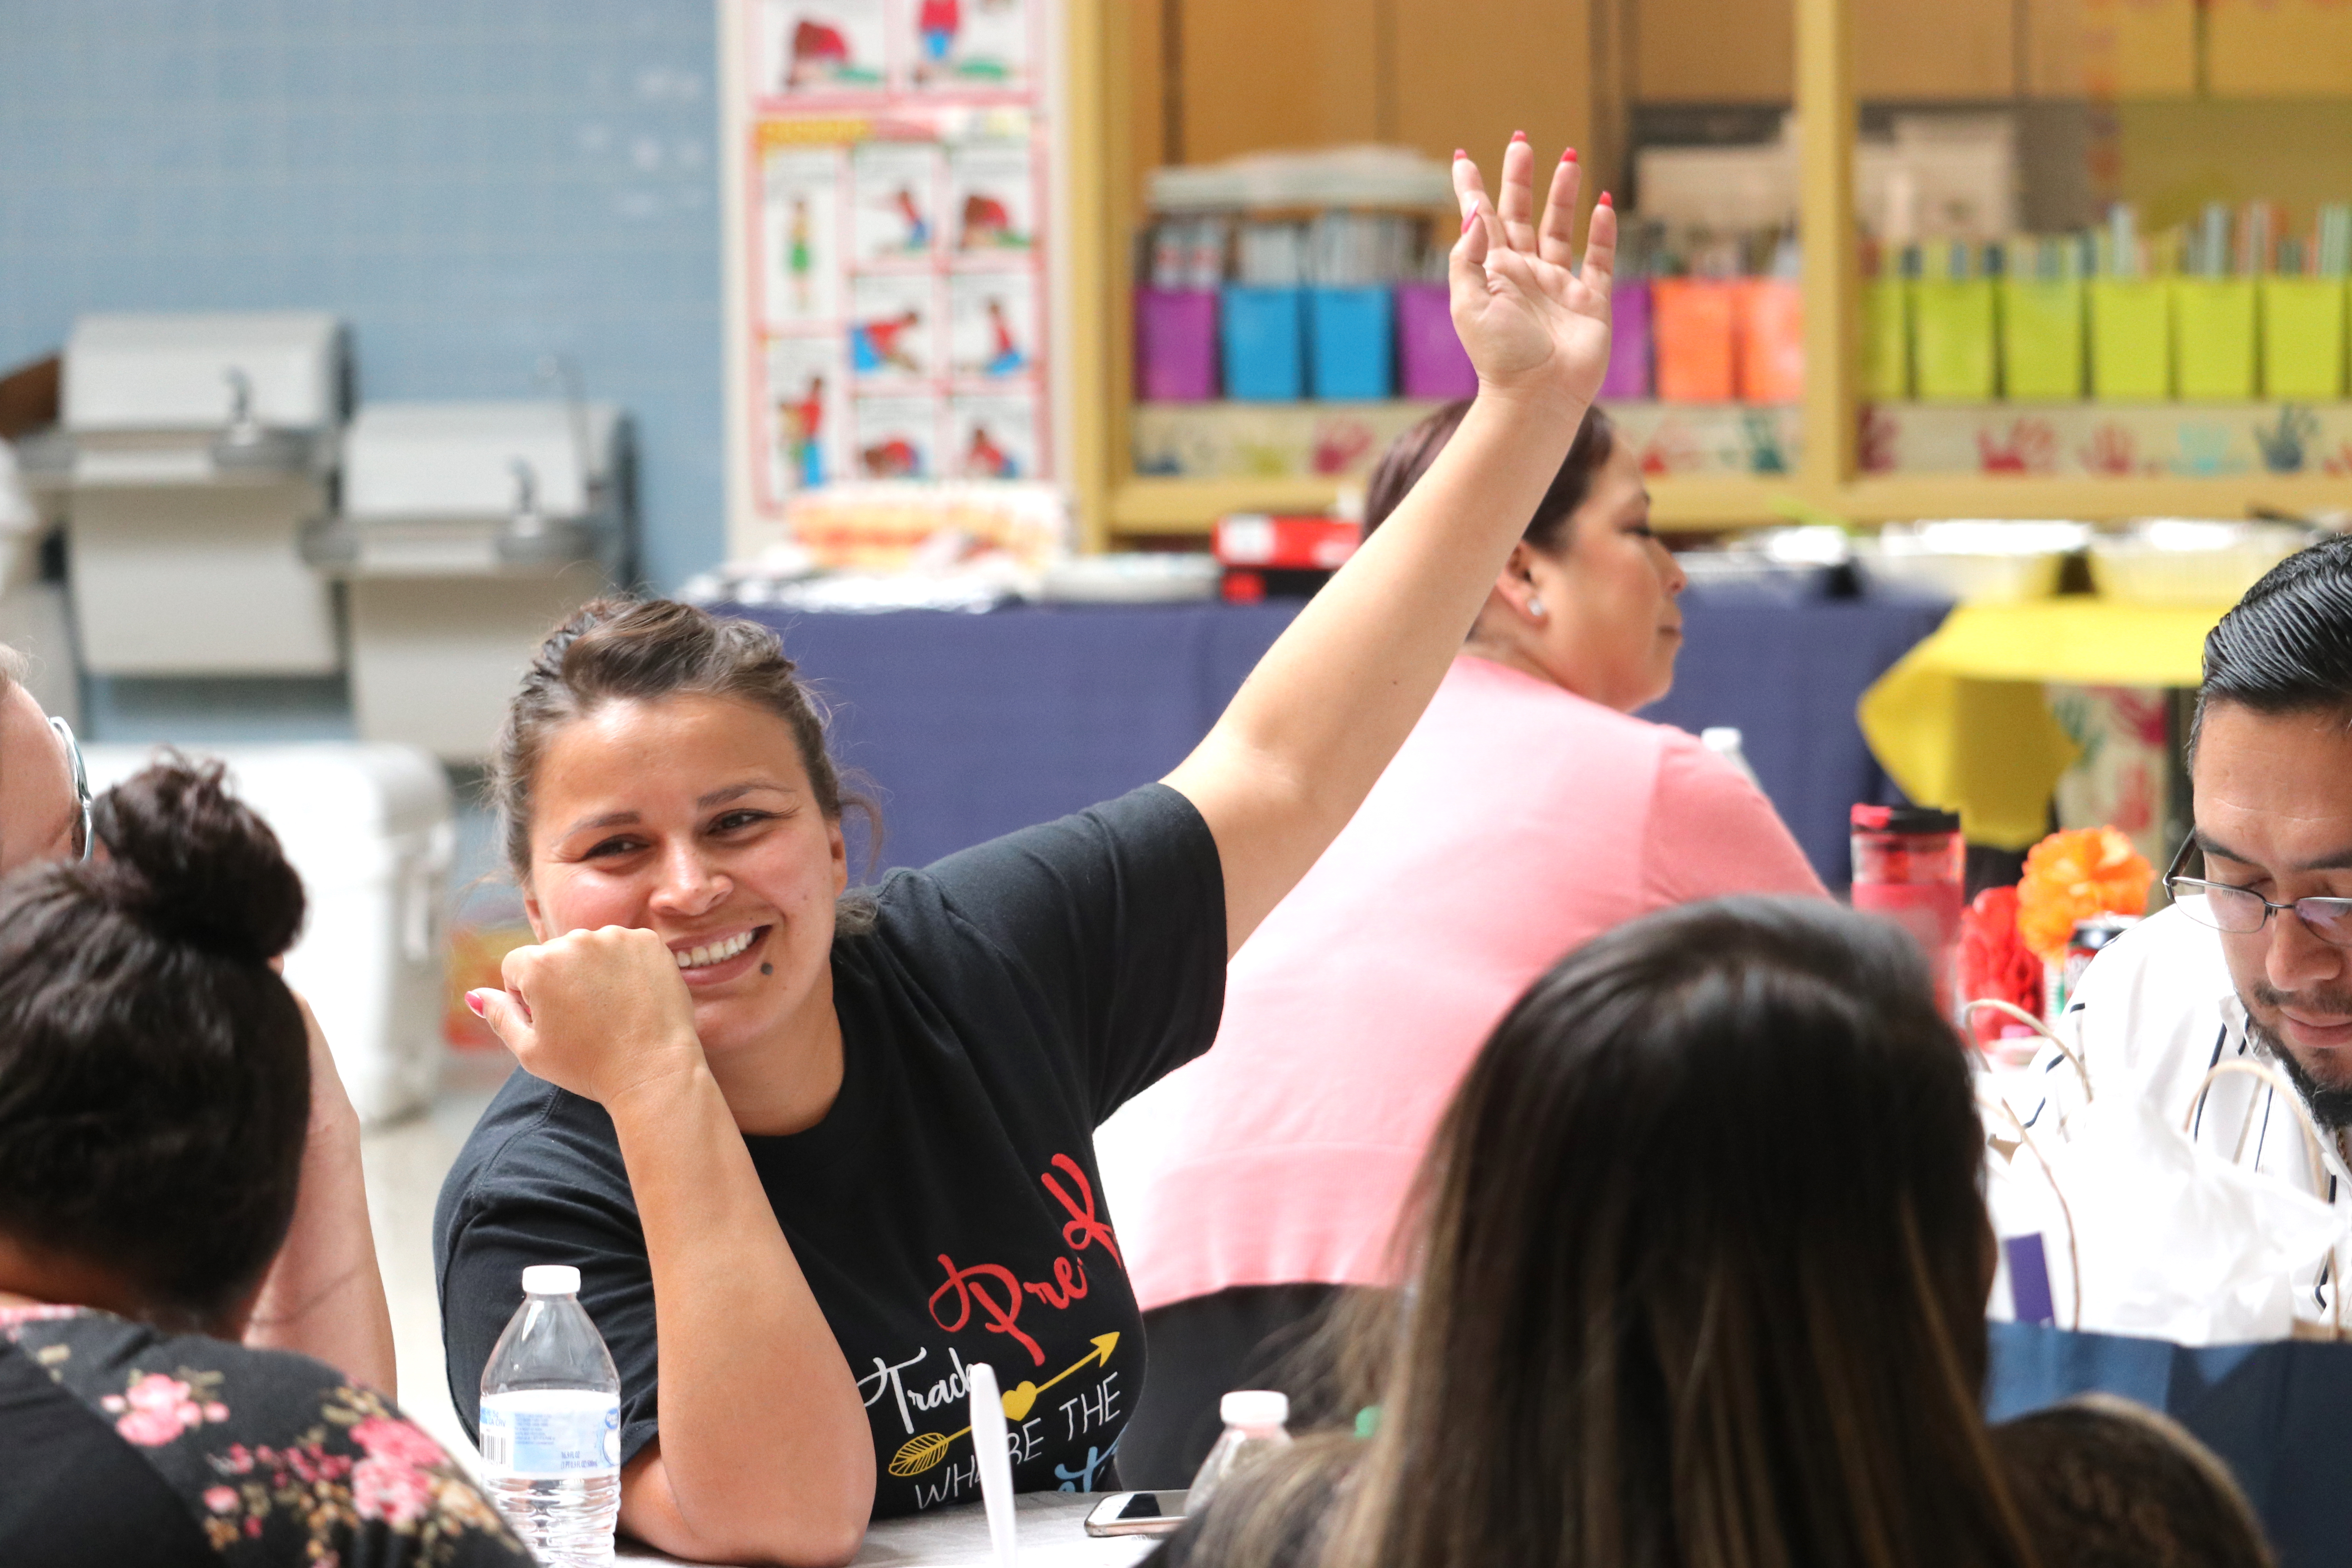 Nonprofit Conference Attendee raising hand